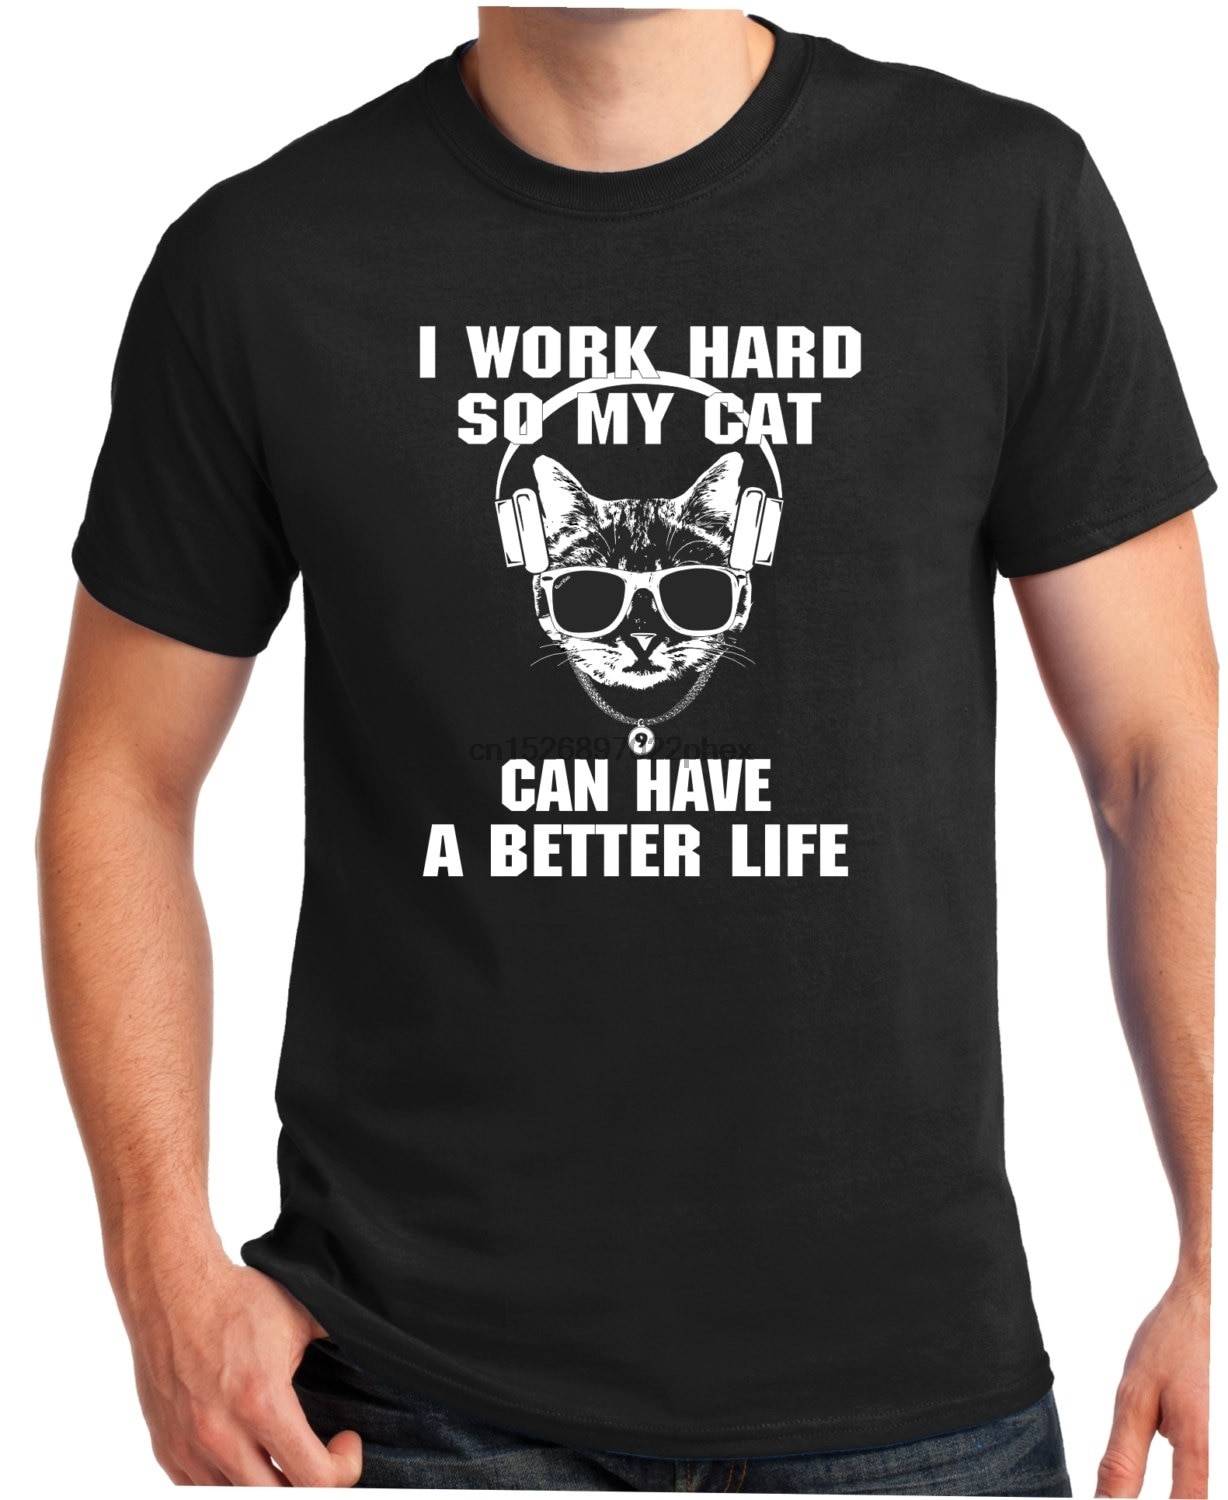 Cat Shirt I Work Hard So My Cat Can Have A Better Life T Shirt T-shirt shirt for him For her Gift Funny Geek T-shirt Tee